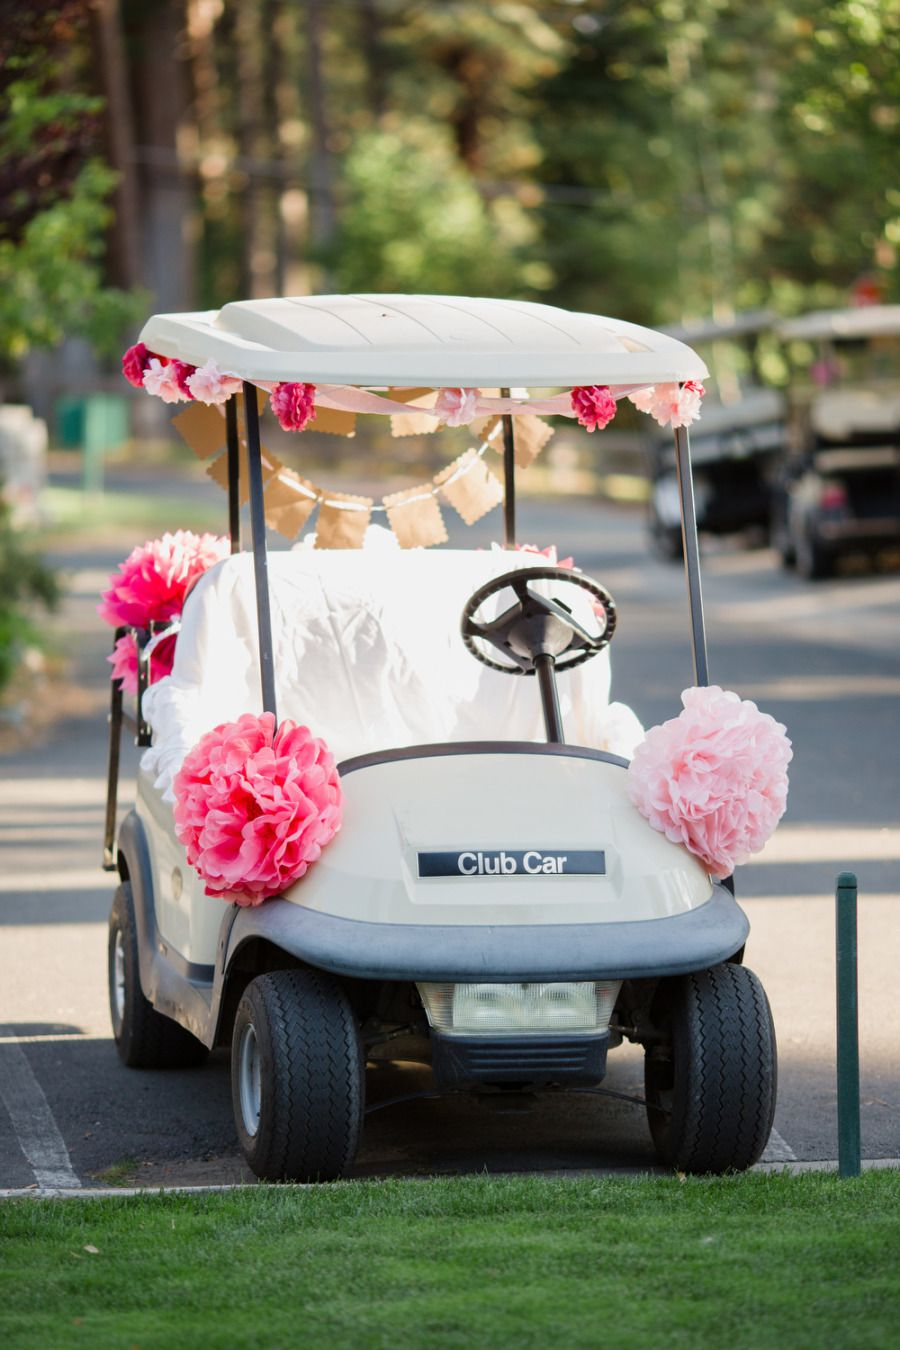 Clic Elegance at The Glenbrook Club | Happily Ever After ... on ford think electric golf cart, burning man golf cart, pink golf cart,